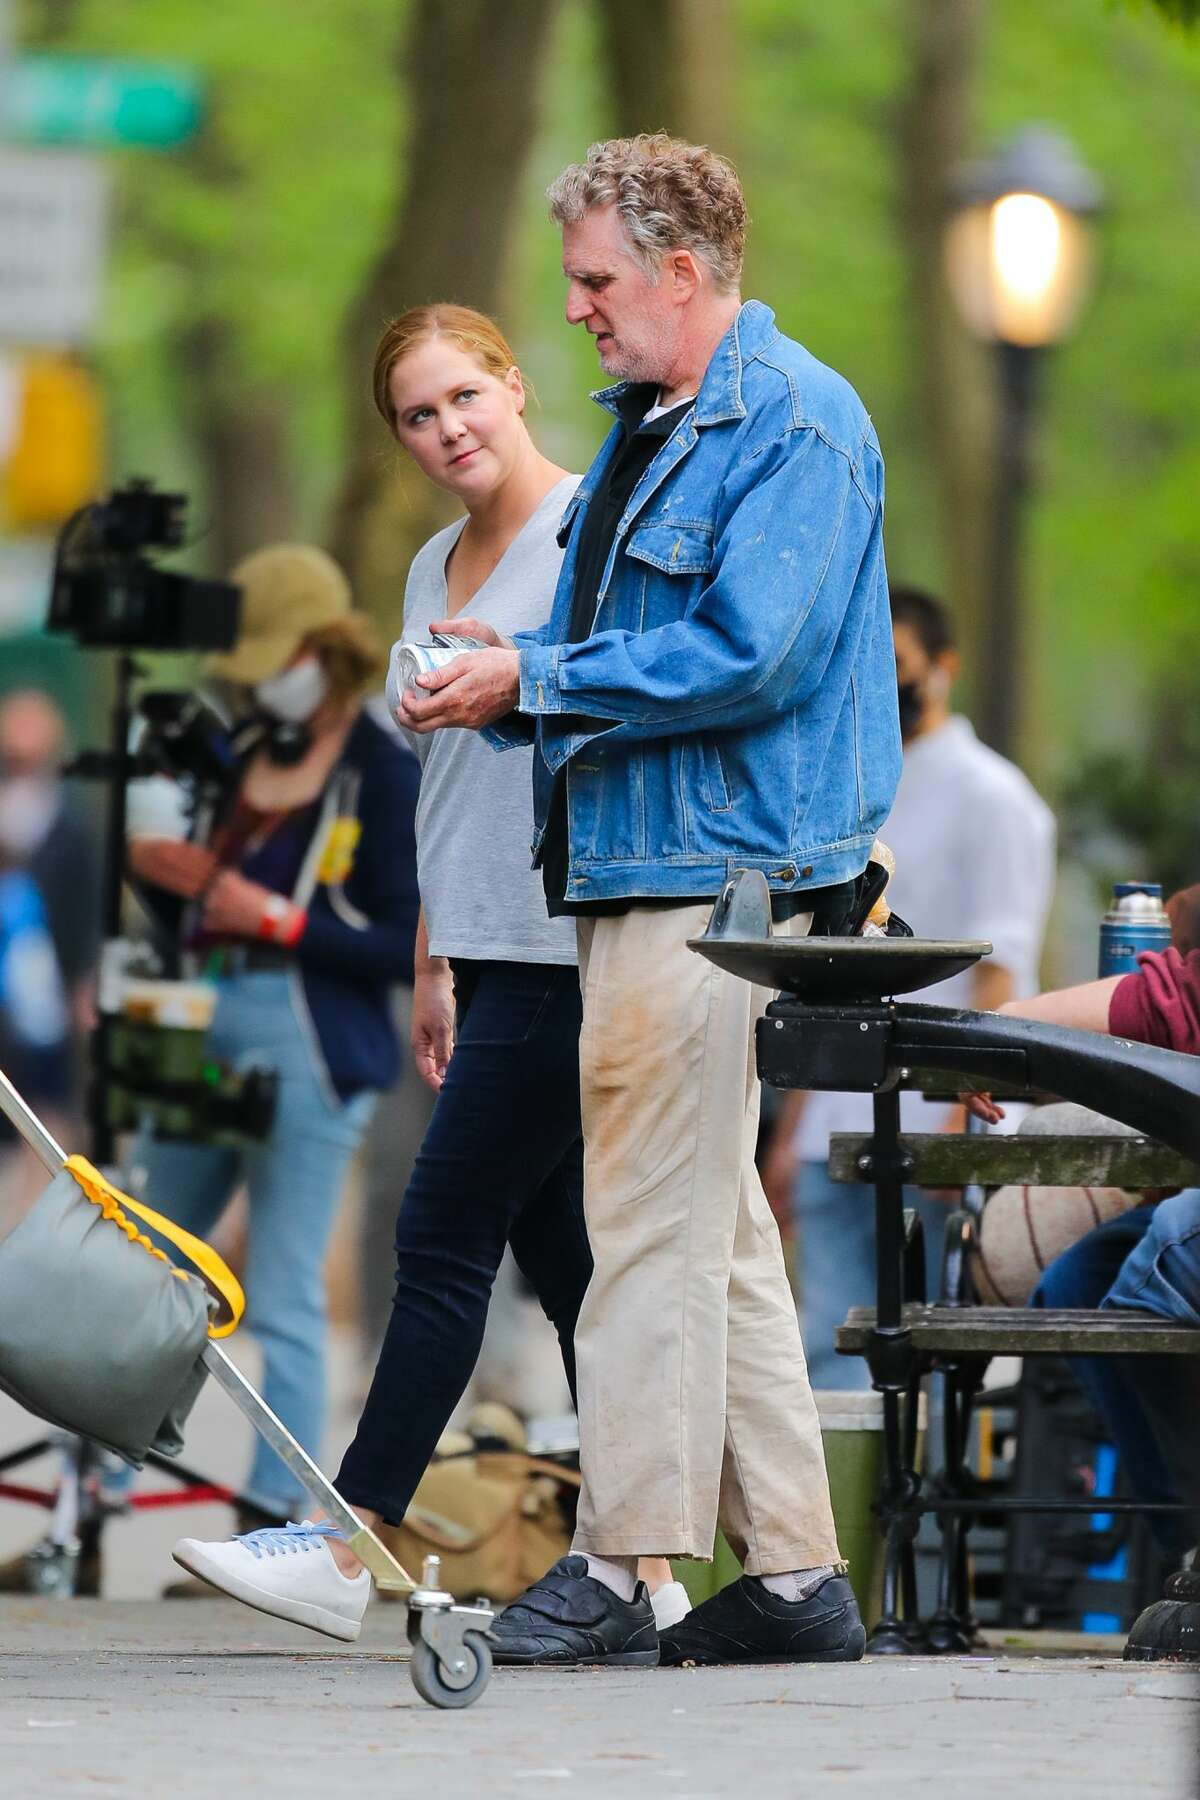 """Amy Schumer and Michael Rapaport are seen filming the Hulu series """"Life & Beth"""" on April 28, 2021 in New York City. The production is now shooting in Dutchess County, the latest in a long list of TV and film productions to shoot in the region."""